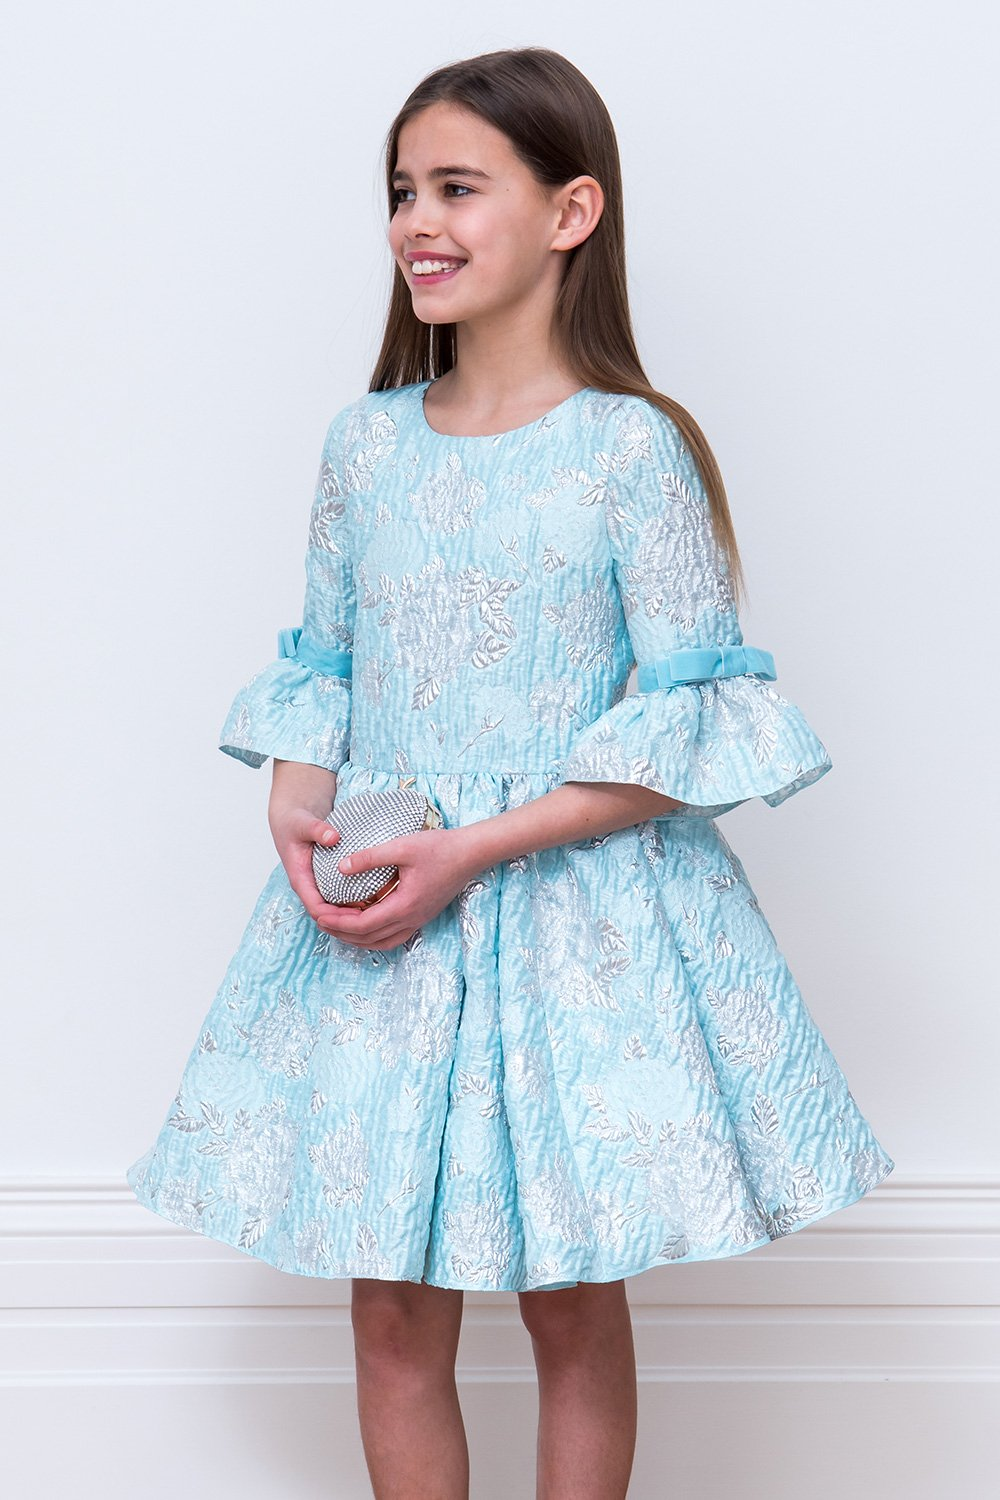 Dresses For Teens - David Charles Childrens Wear